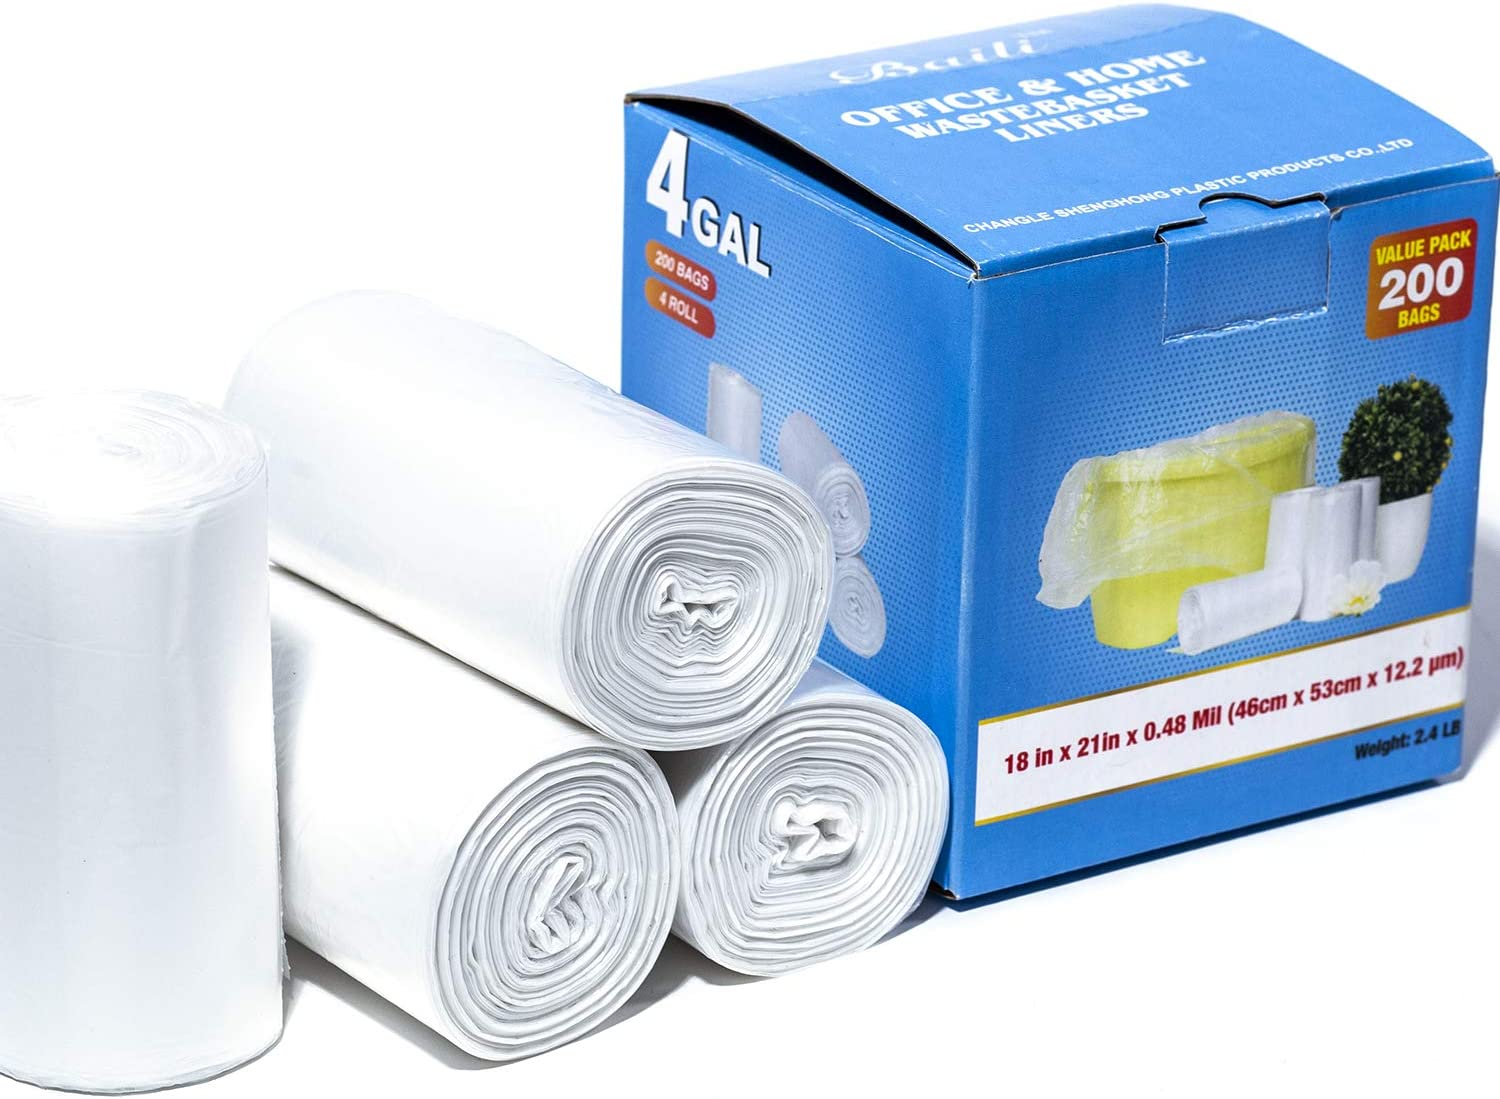 4 Gallon 200 Counts Small Trash Bags Bathroom Garbage Bags Clear Plastic for Home and Office Bins kitchen trash recycling bags